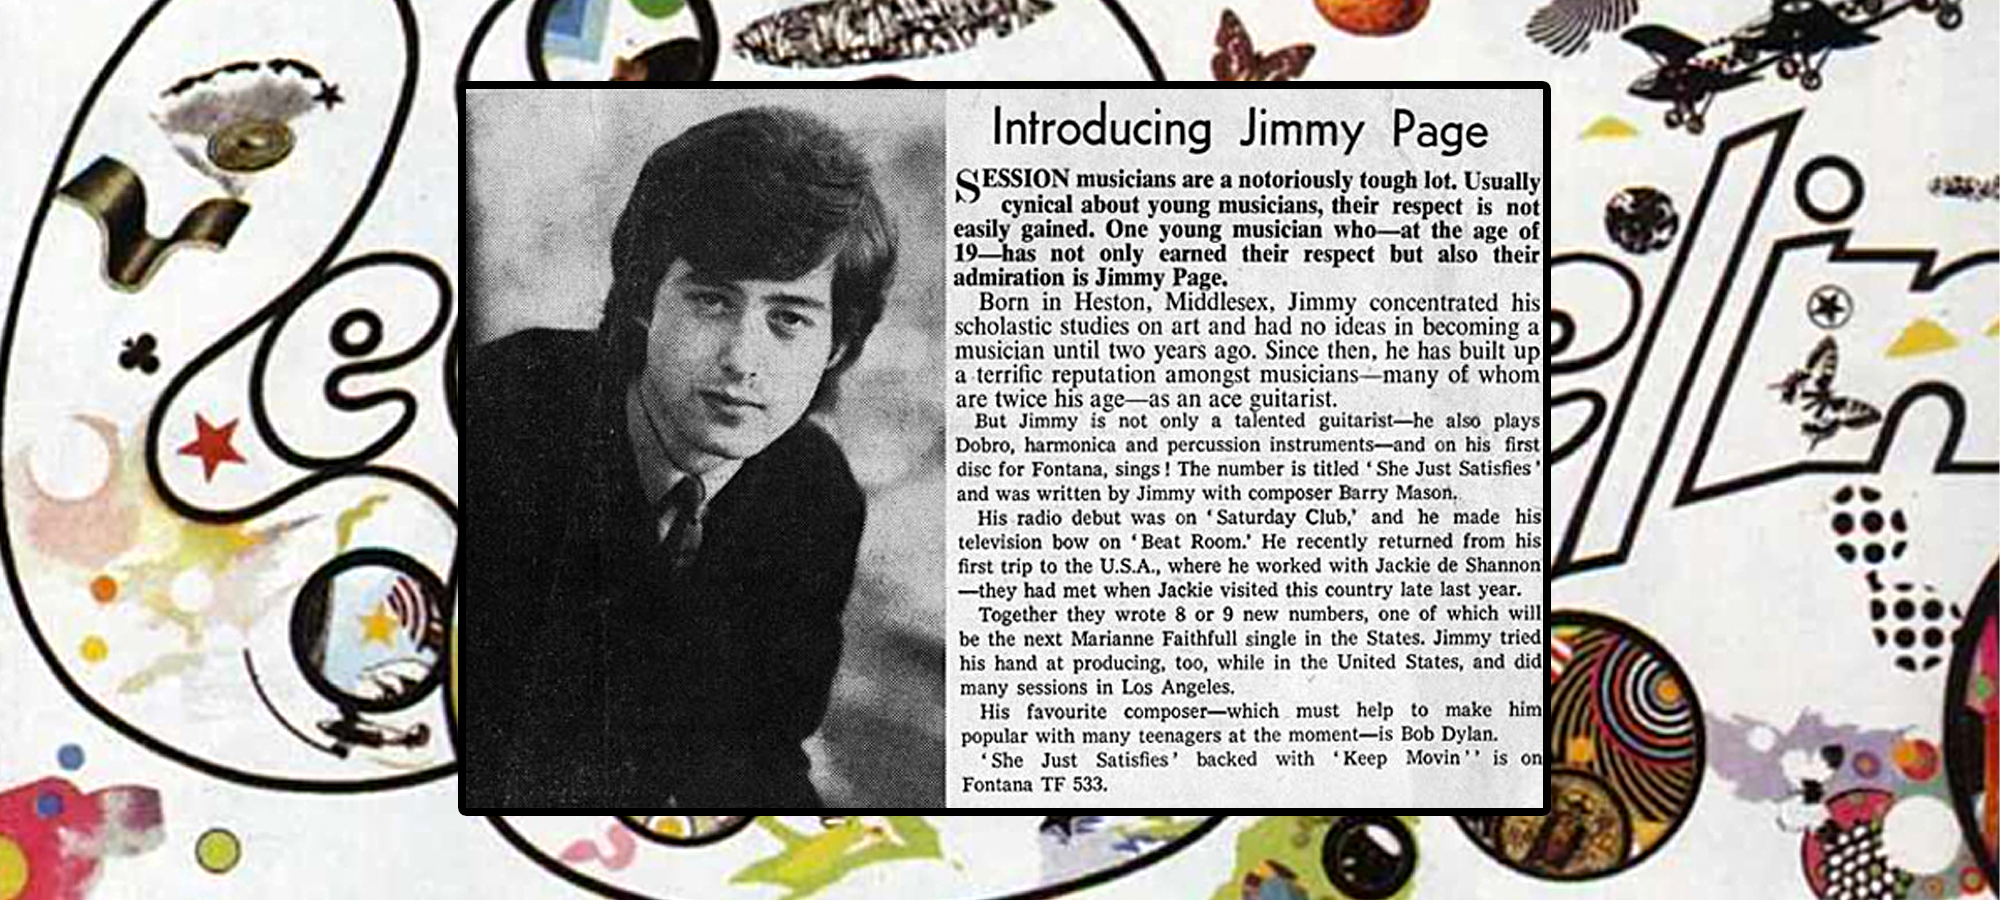 jimmy-page-sessions